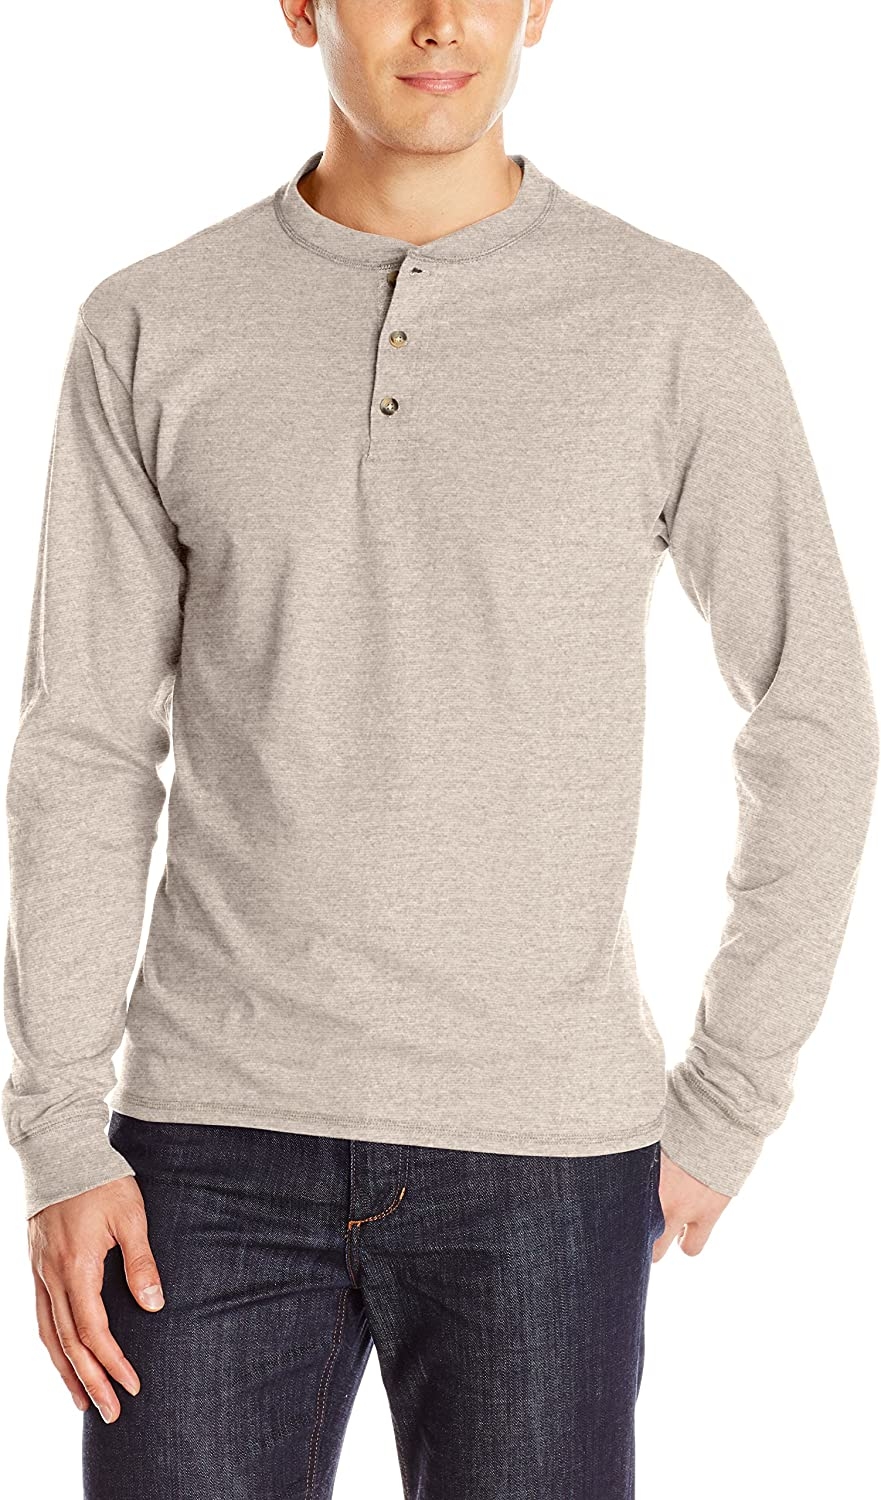 Hanes Men's Long Sleeve Beefy Henley Shirt